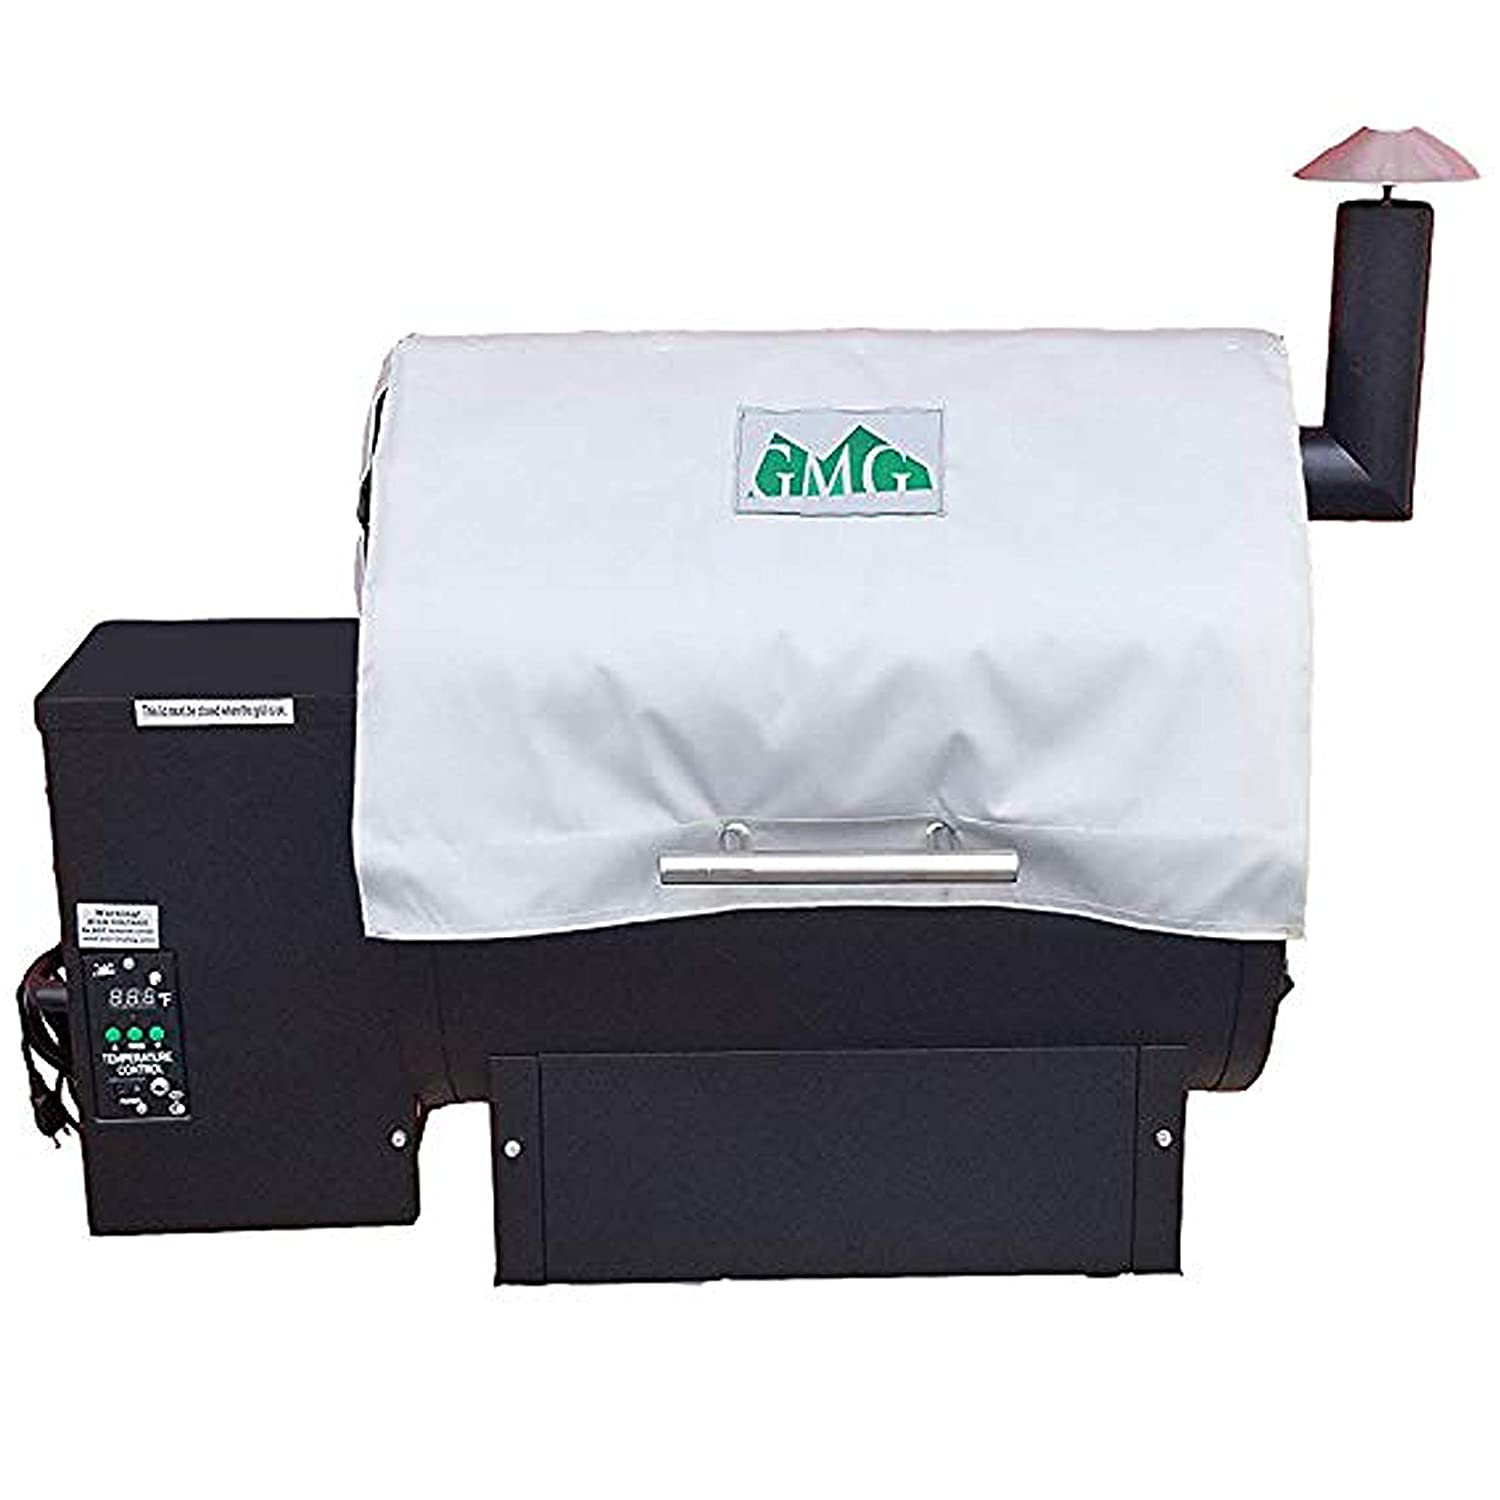 Green Mountain Grills 6003 Thermal Blanket for Daniel Boone Pellet Grill